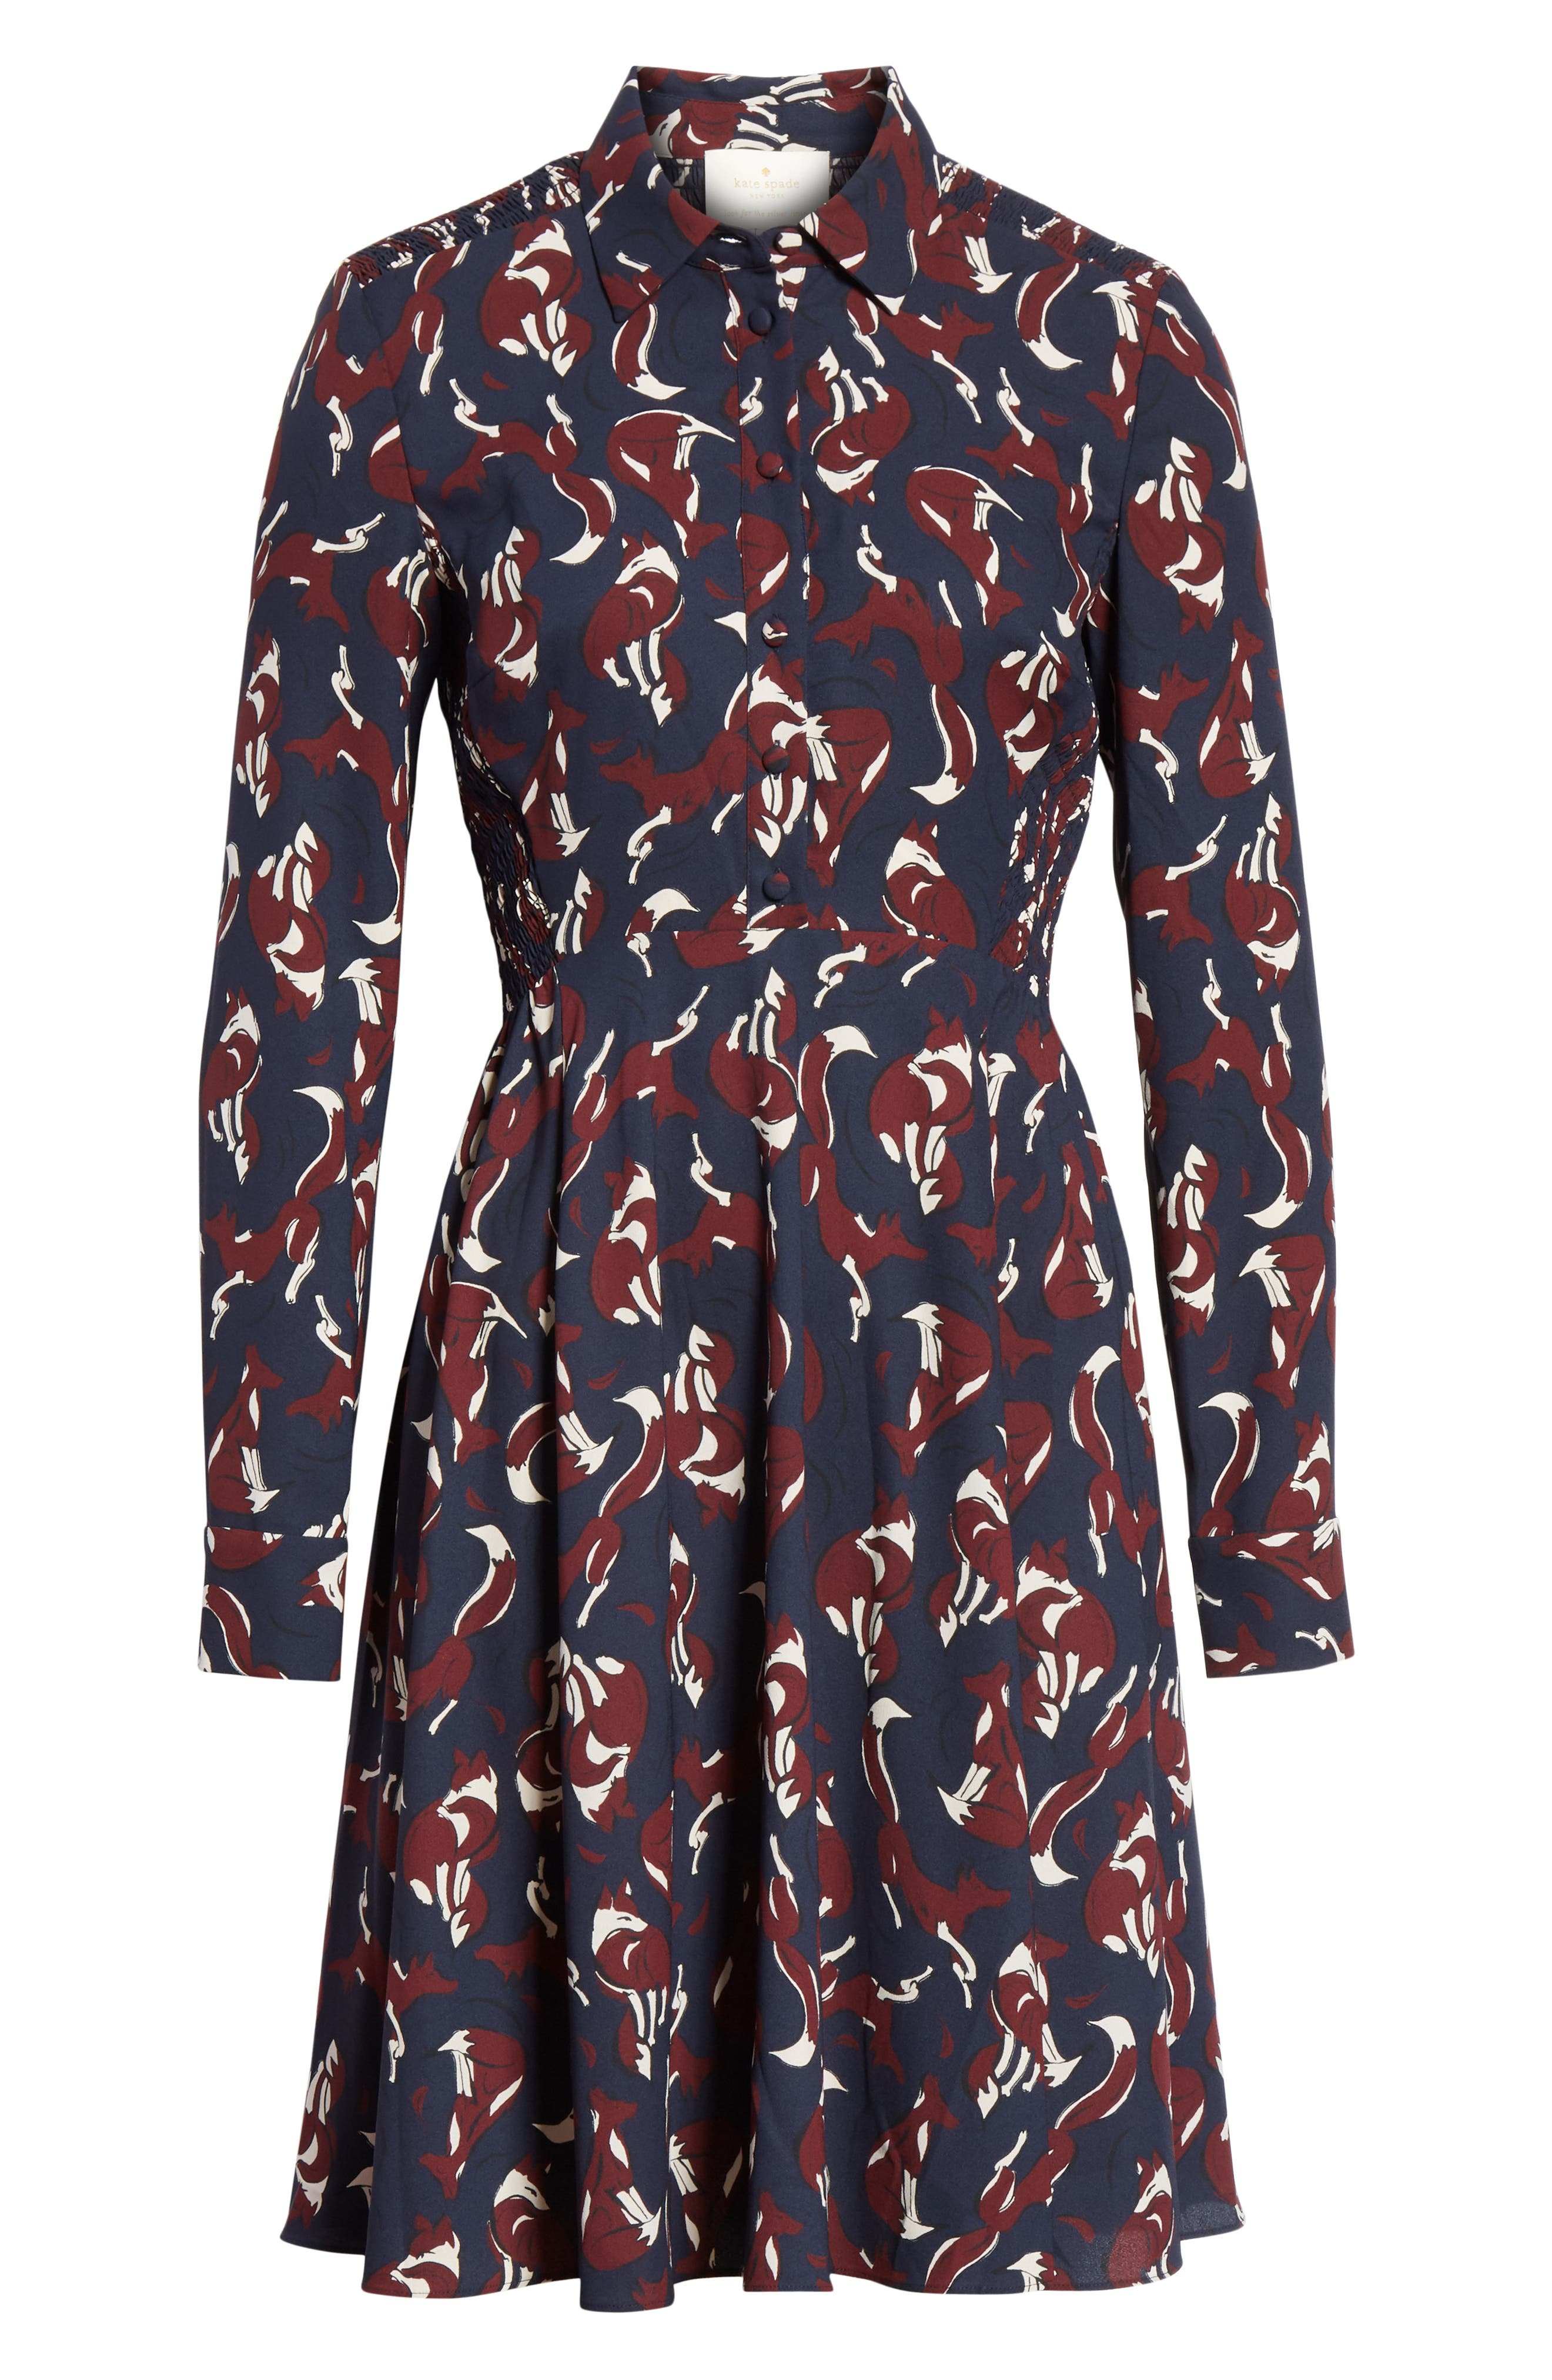 KATE SPADE NEW YORK,                             foxes smocked shirtdress,                             Alternate thumbnail 6, color,                             426